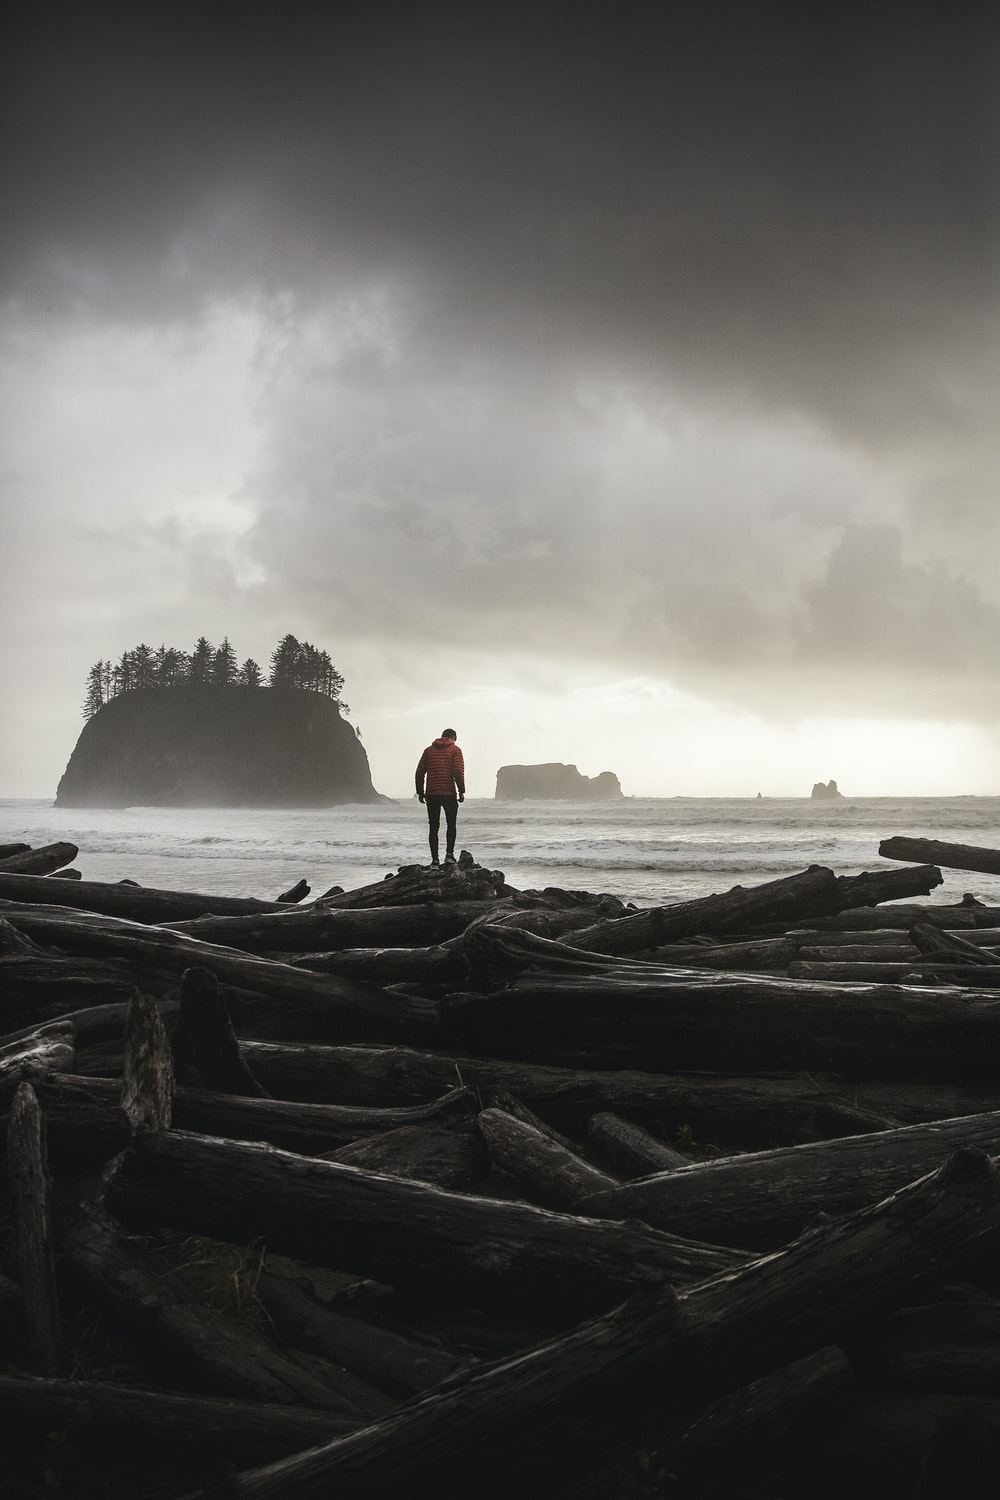 photo of person wearing orange sweater standing on logs